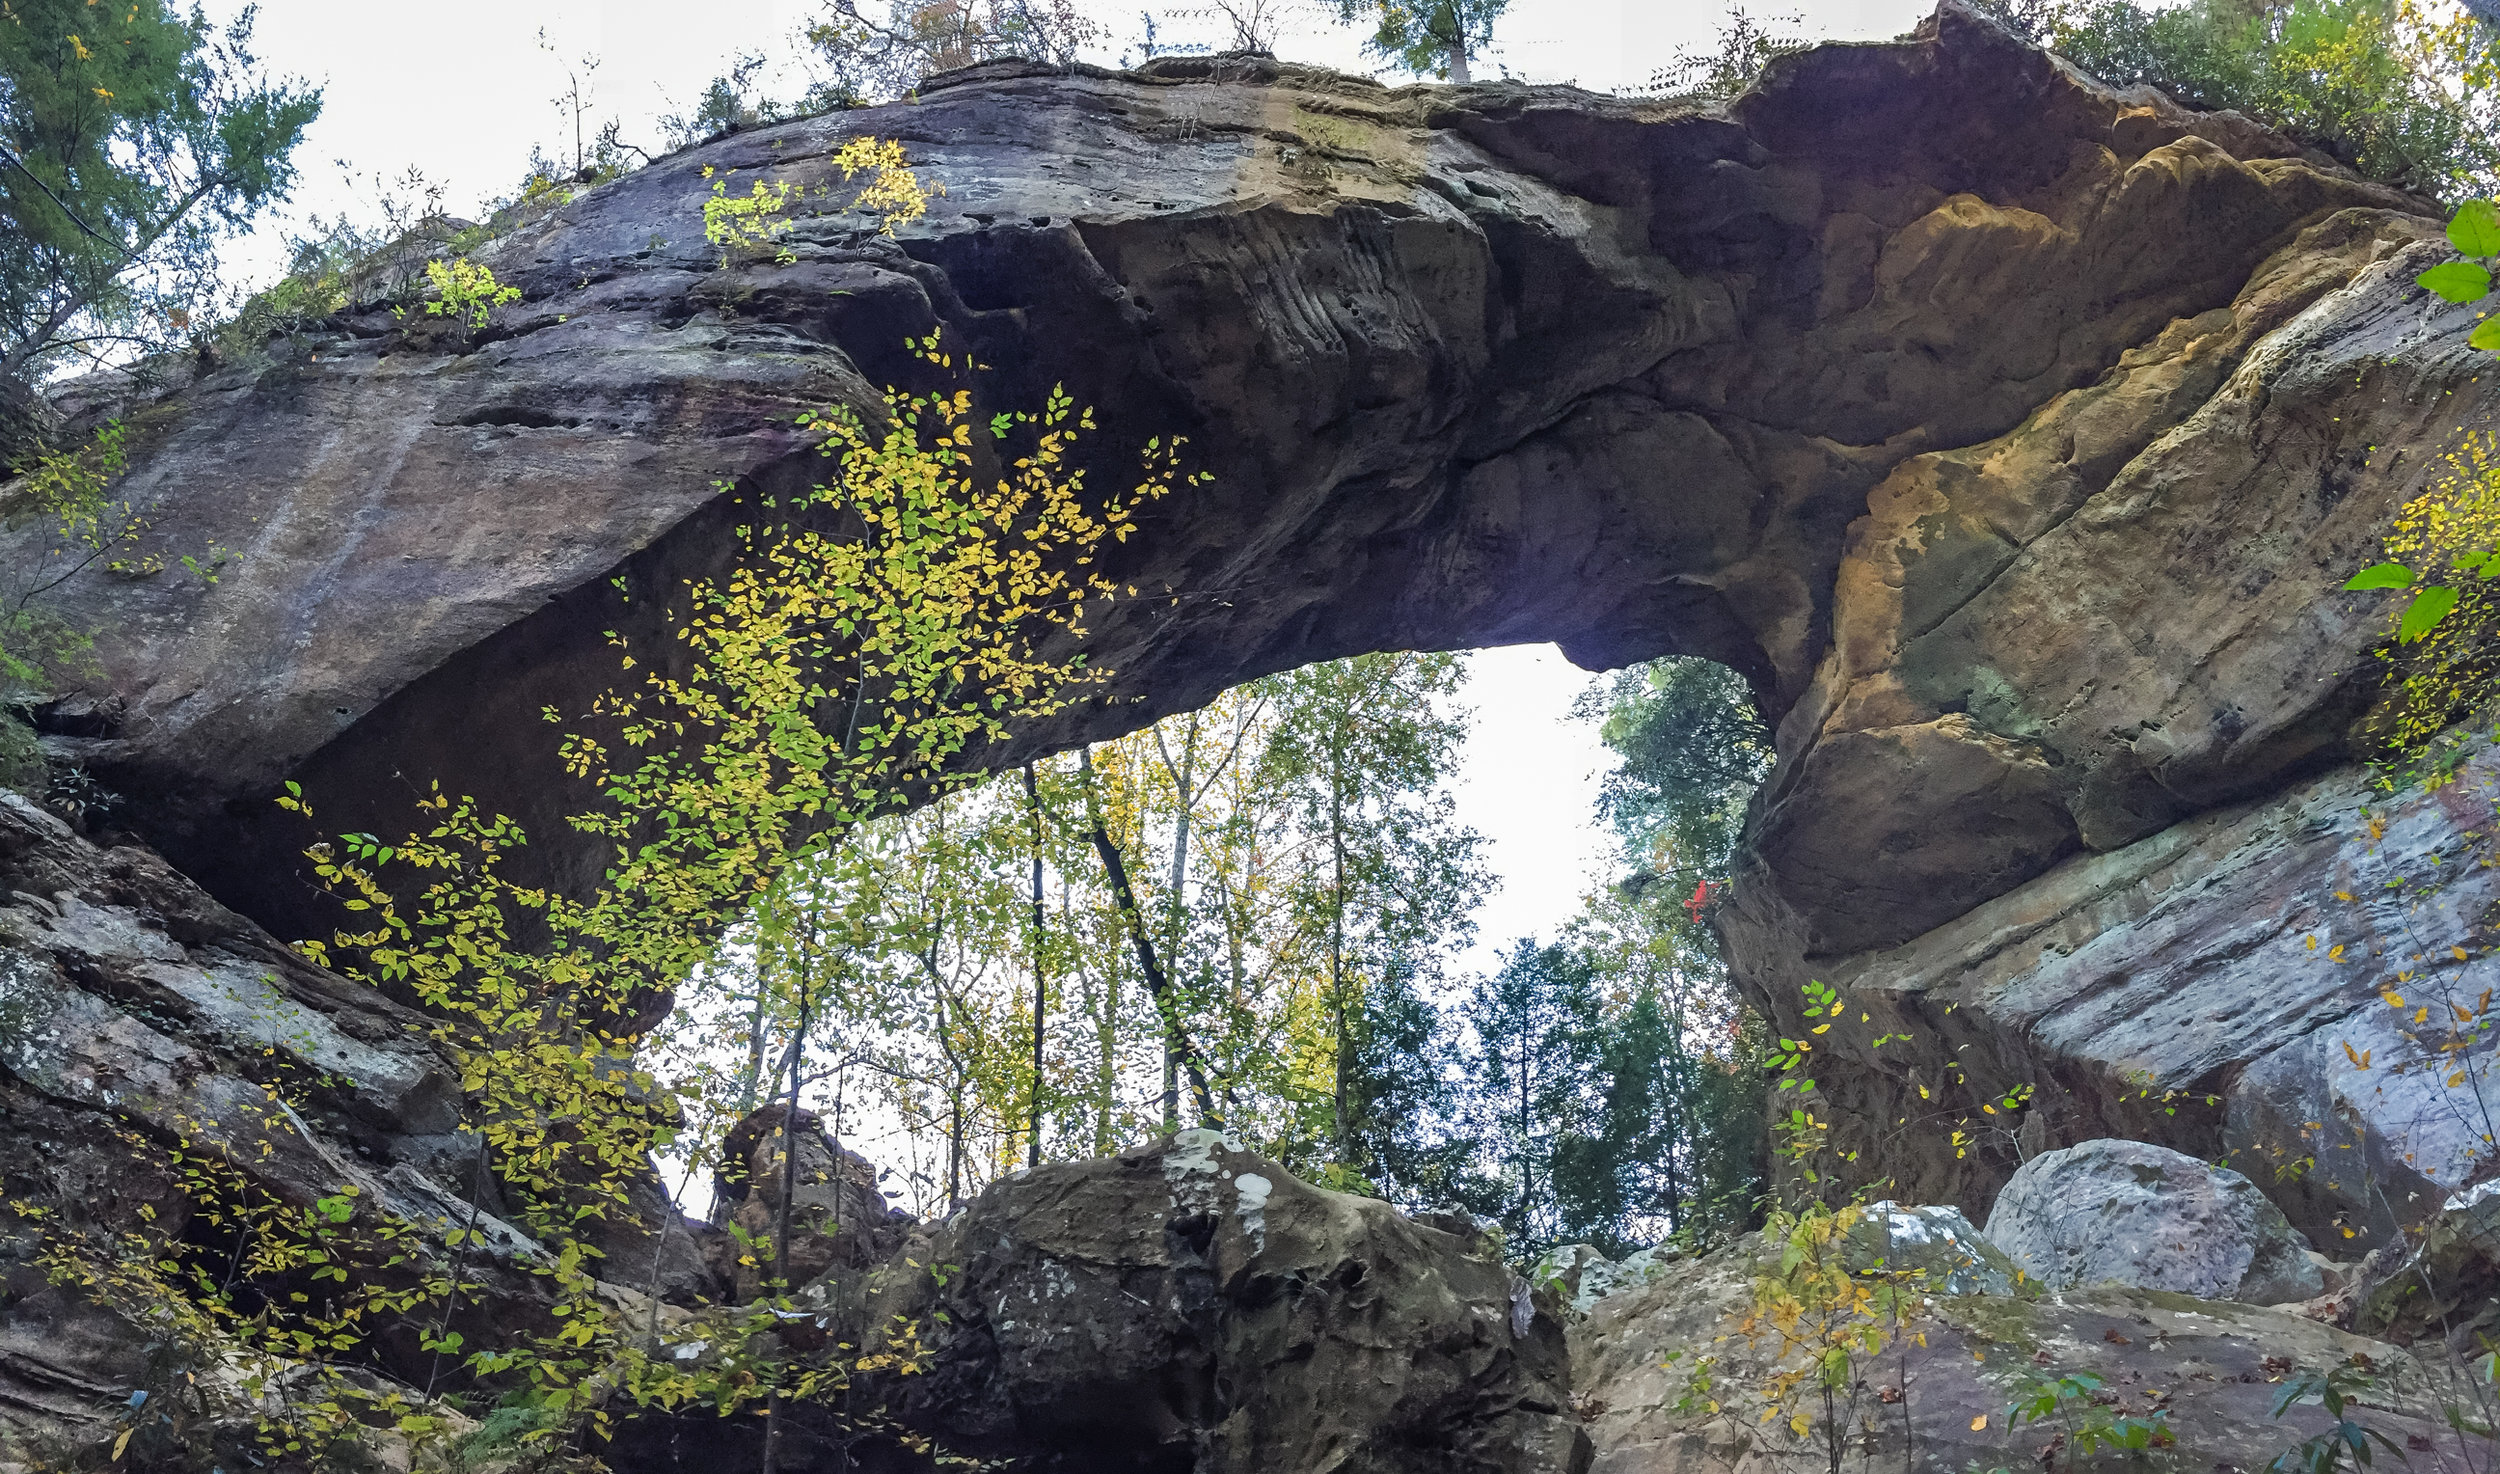 Gray's Arch in Red River Gorge, Kentucky